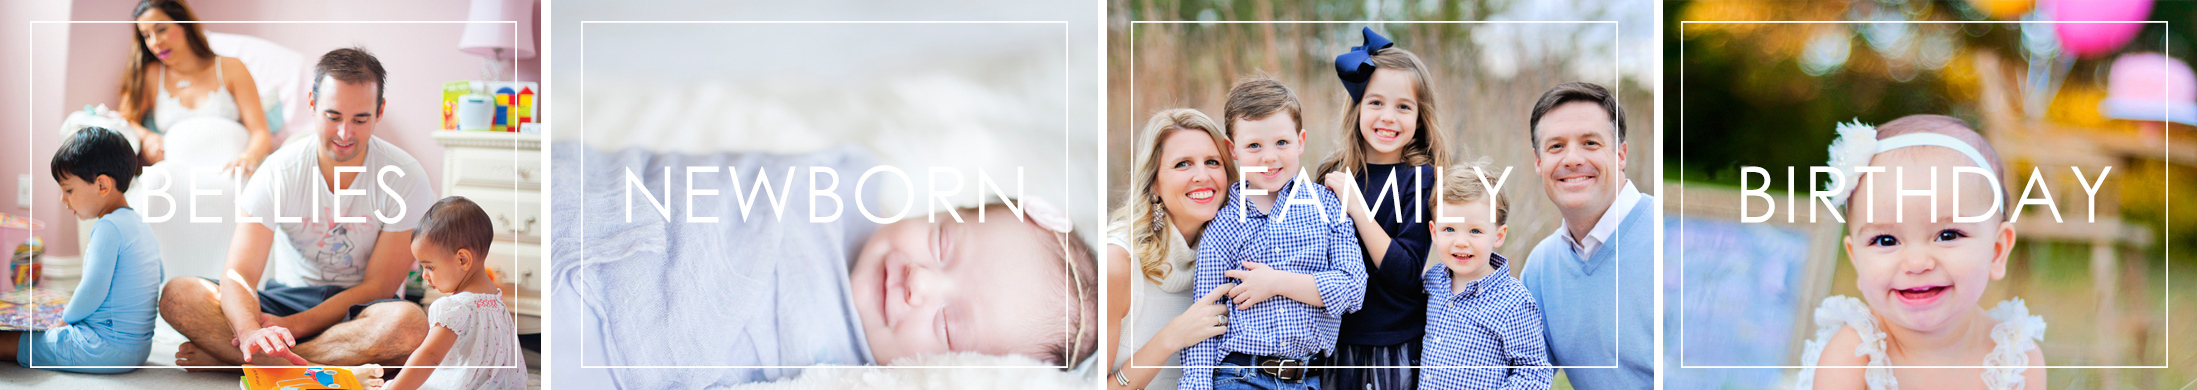 austin family lifestyle photographer ziem photography